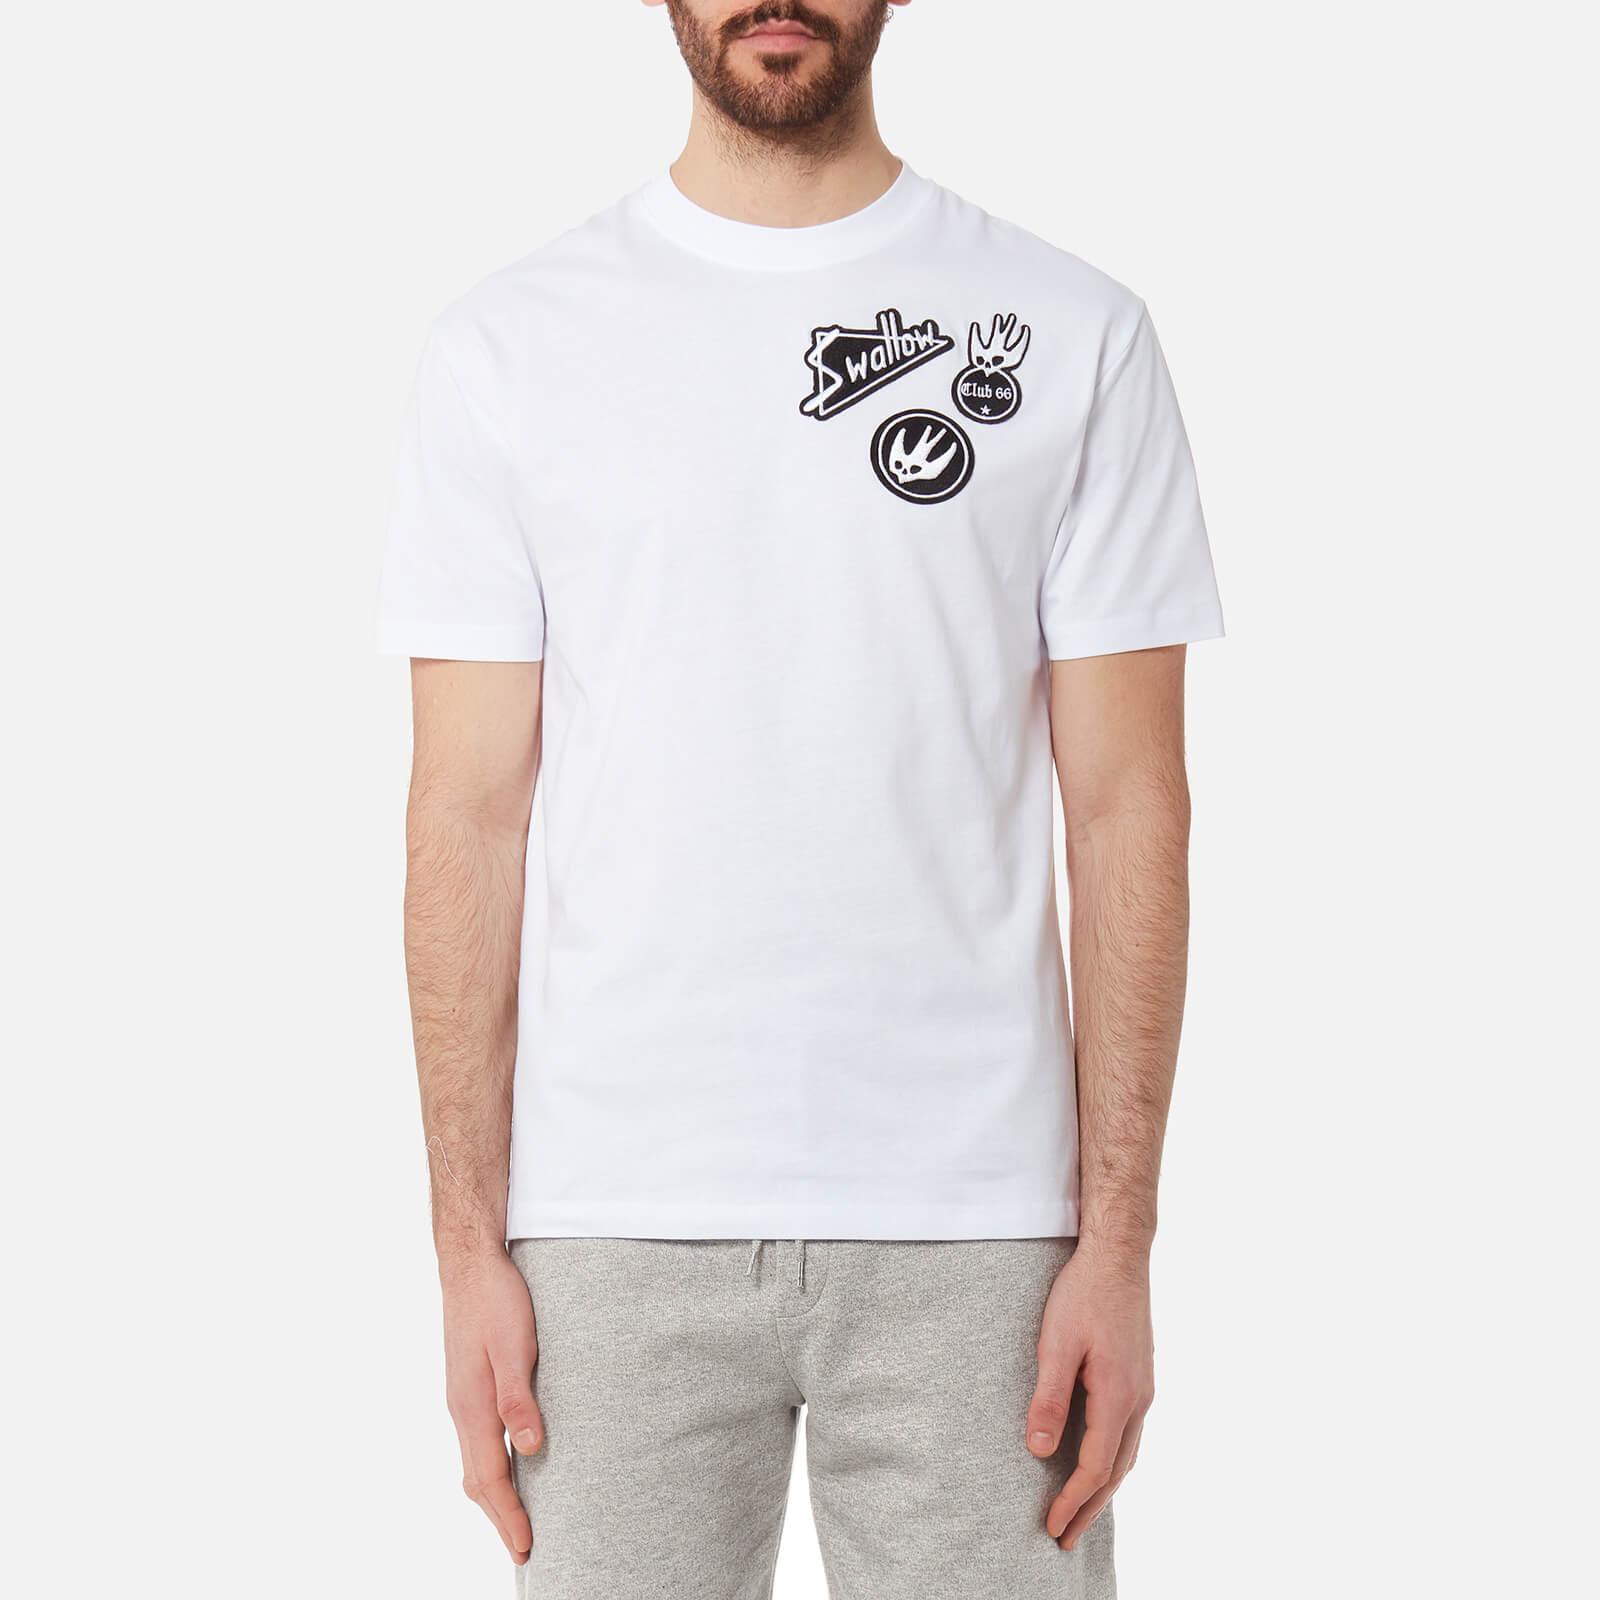 7d6d3f7a3425 McQ Alexander McQueen Men s Dropped Shoulder Swallow T-Shirt - Optic White  - Free UK Delivery over £50